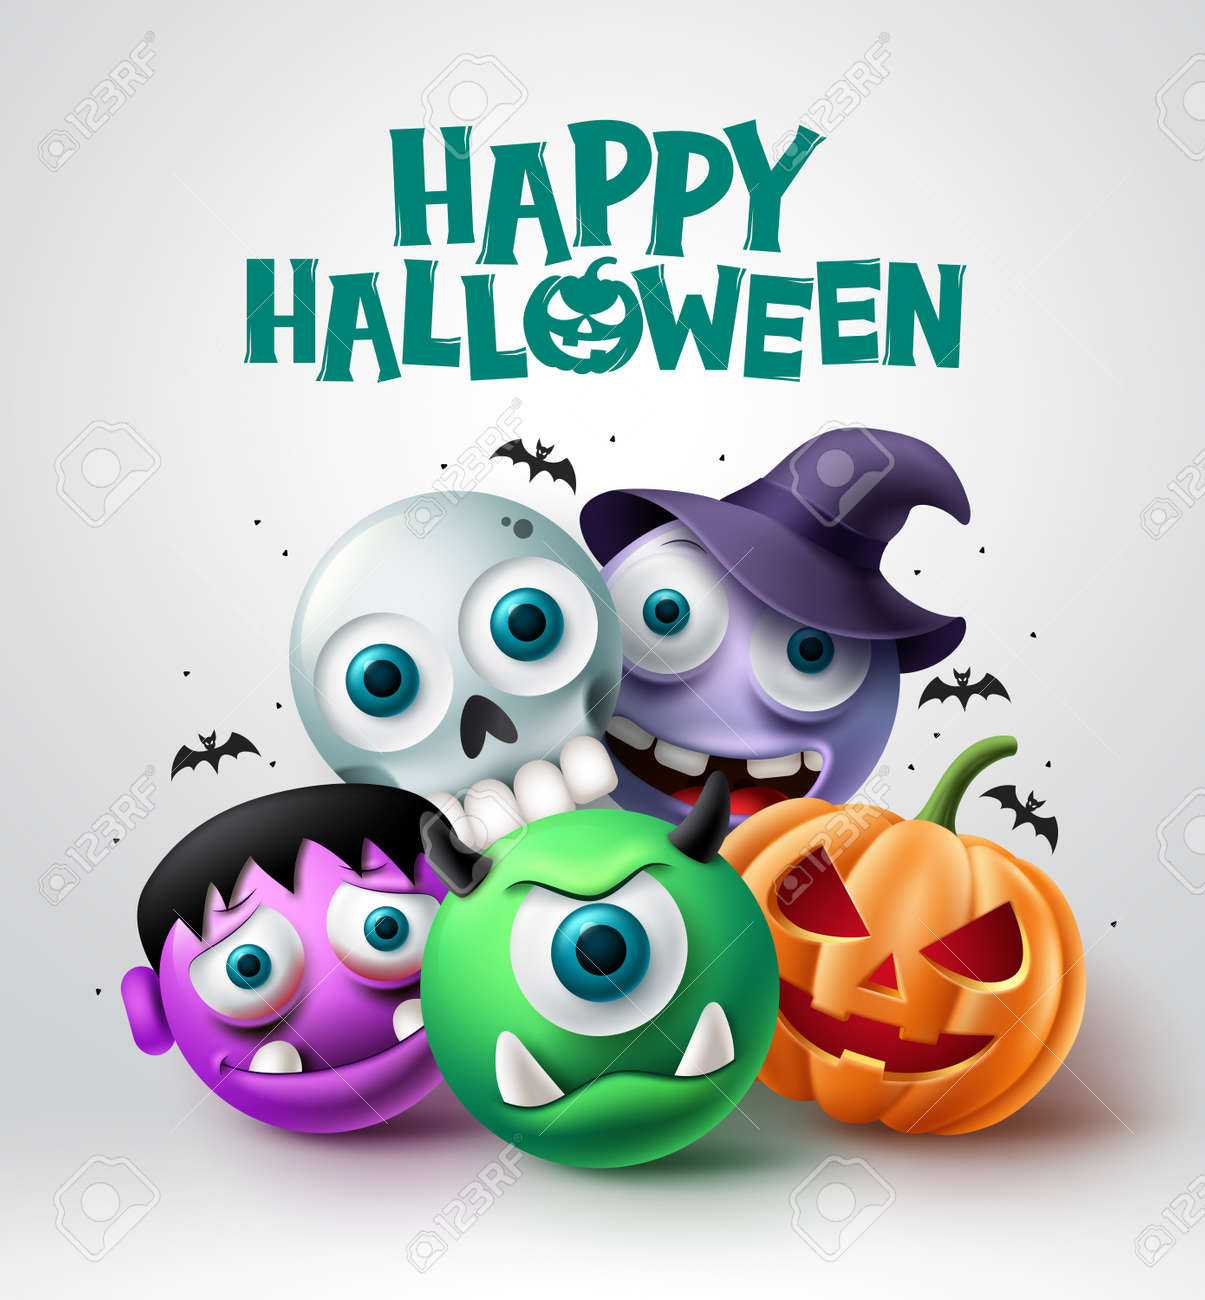 Halloween character vector design. Happy halloween text with scary pumpkin, skull, witch and cyclops horror characters background. Vector illustration. - 172920334